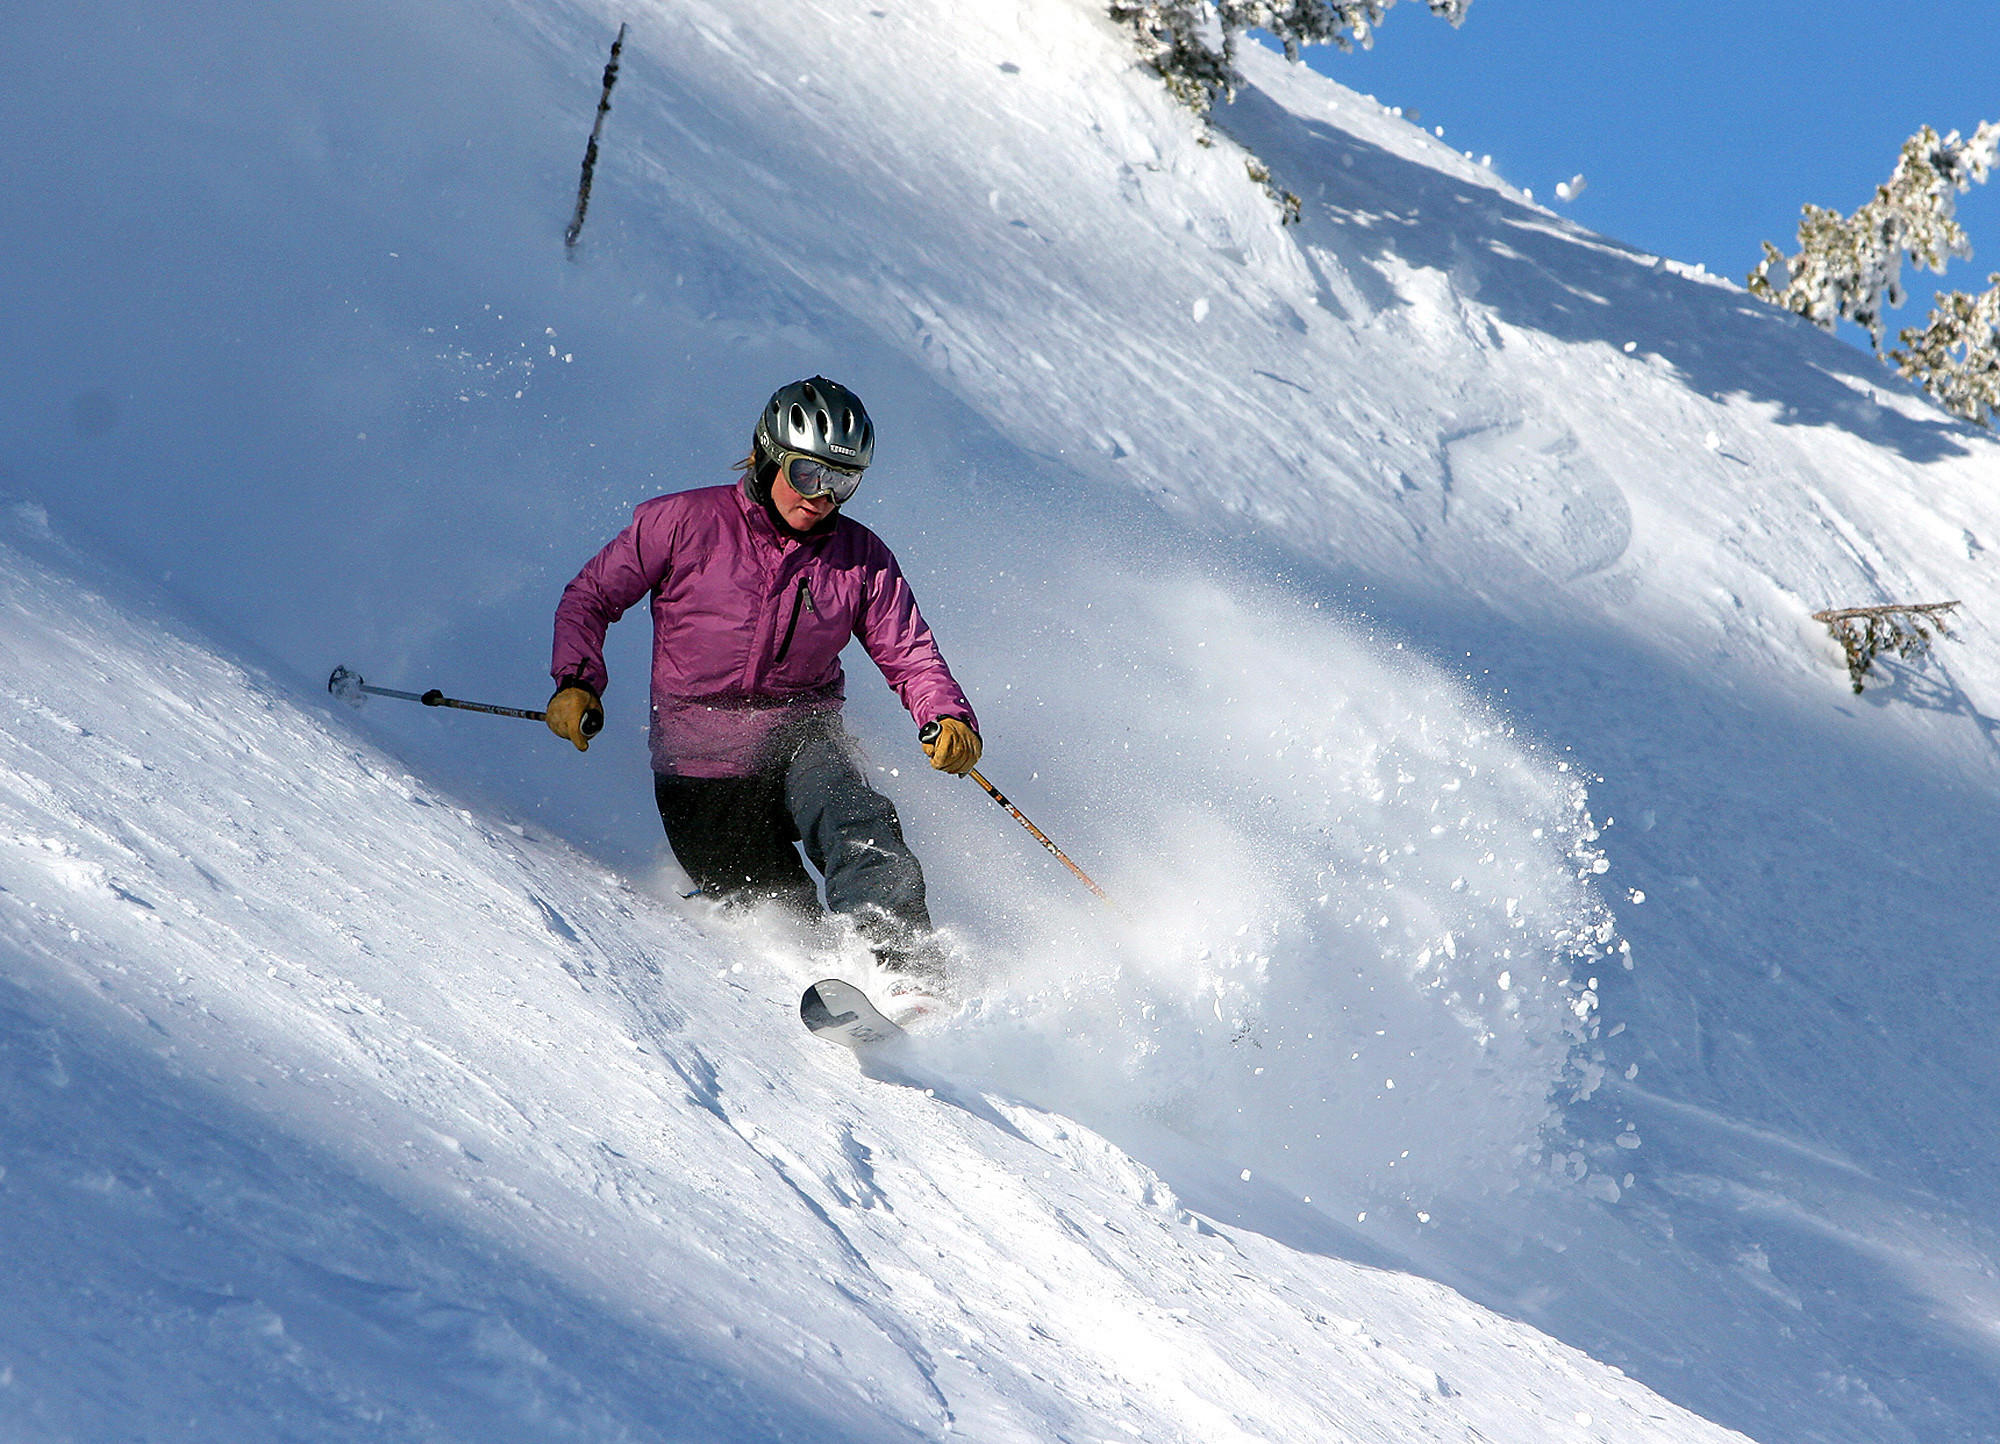 A skier at Alta Ski Area in Utah. The resort has not allowed snowboarders since the 1980s, citing safety and business reasons. But snowboarders are suing to overturn what they argue is an unconstitutional policy.